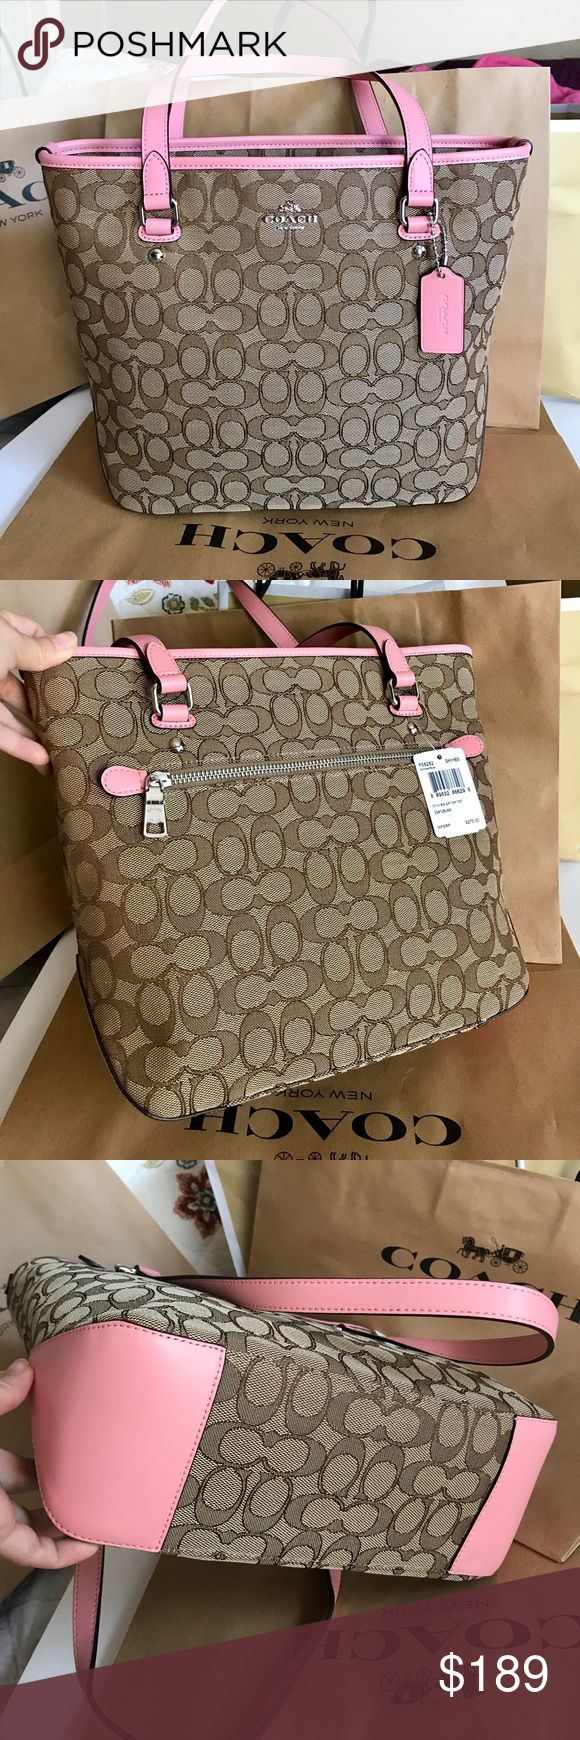 🍀Coach Bag🍀 100% Authentic Coach Tote Bag, brand new with tag!.😍😍😍color Blush/Brown. Coach Bags Totes